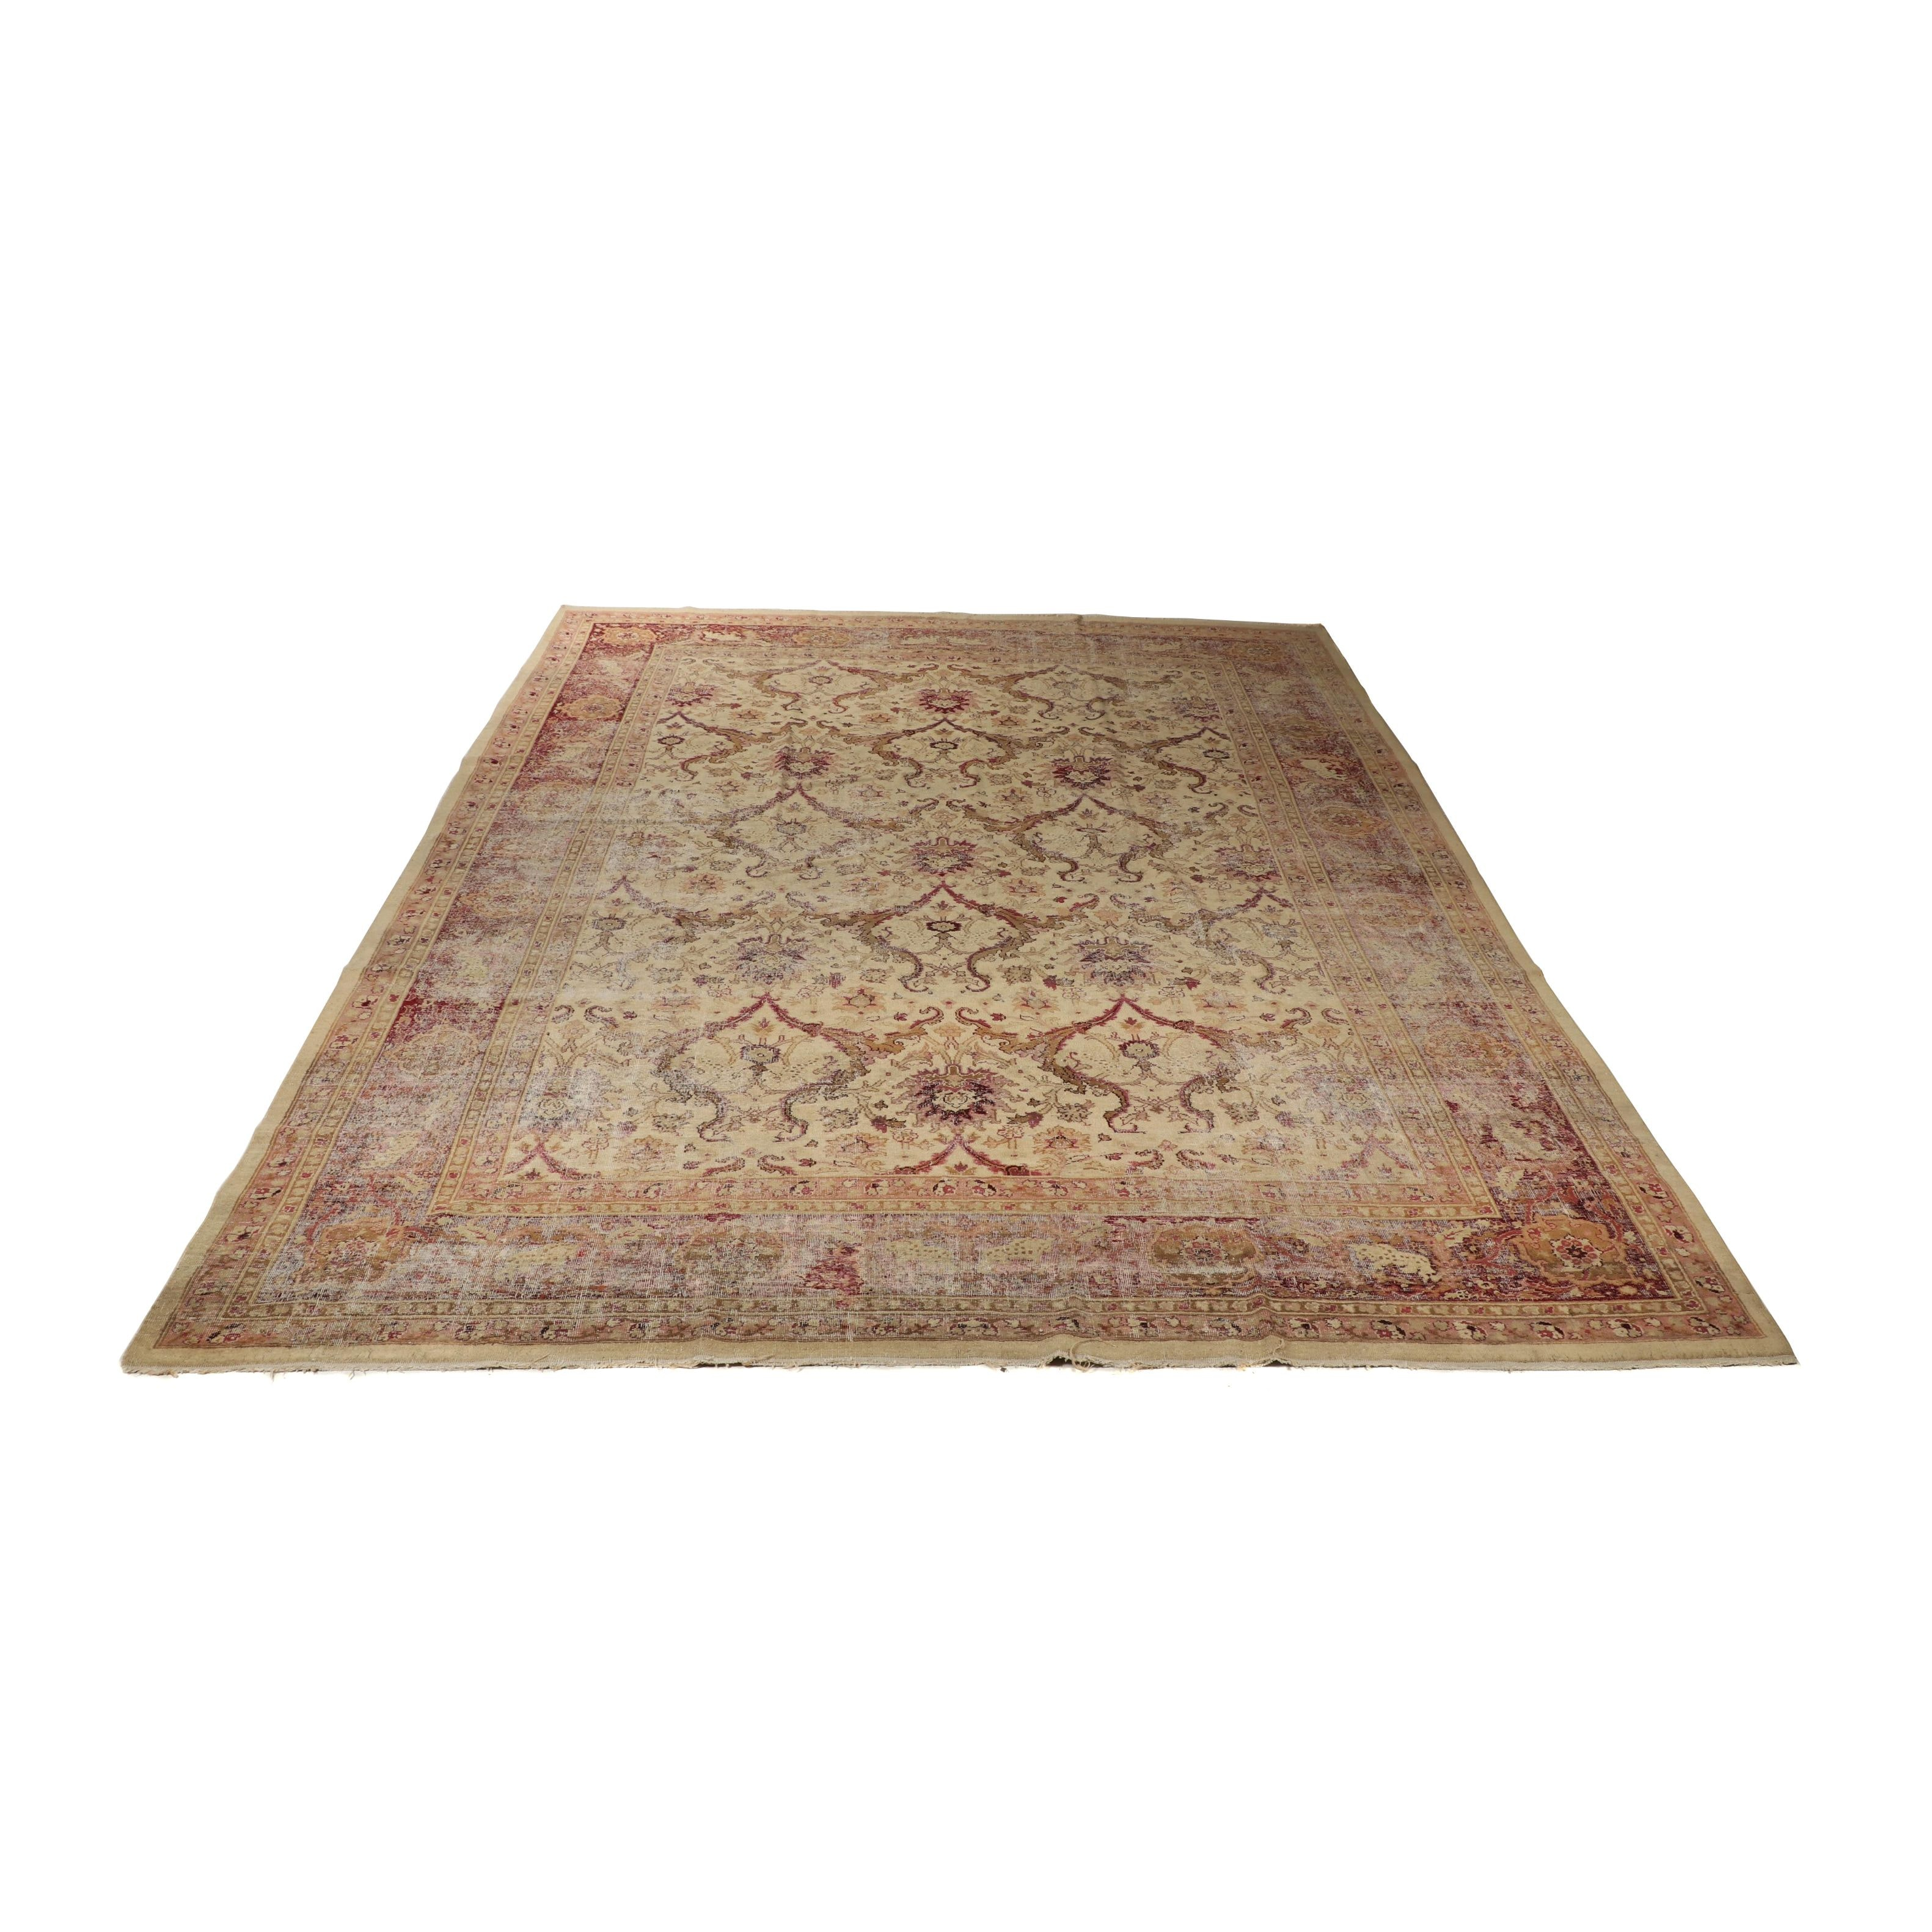 Hand-Knotted Indian Chobi Wool Room Sized Rug